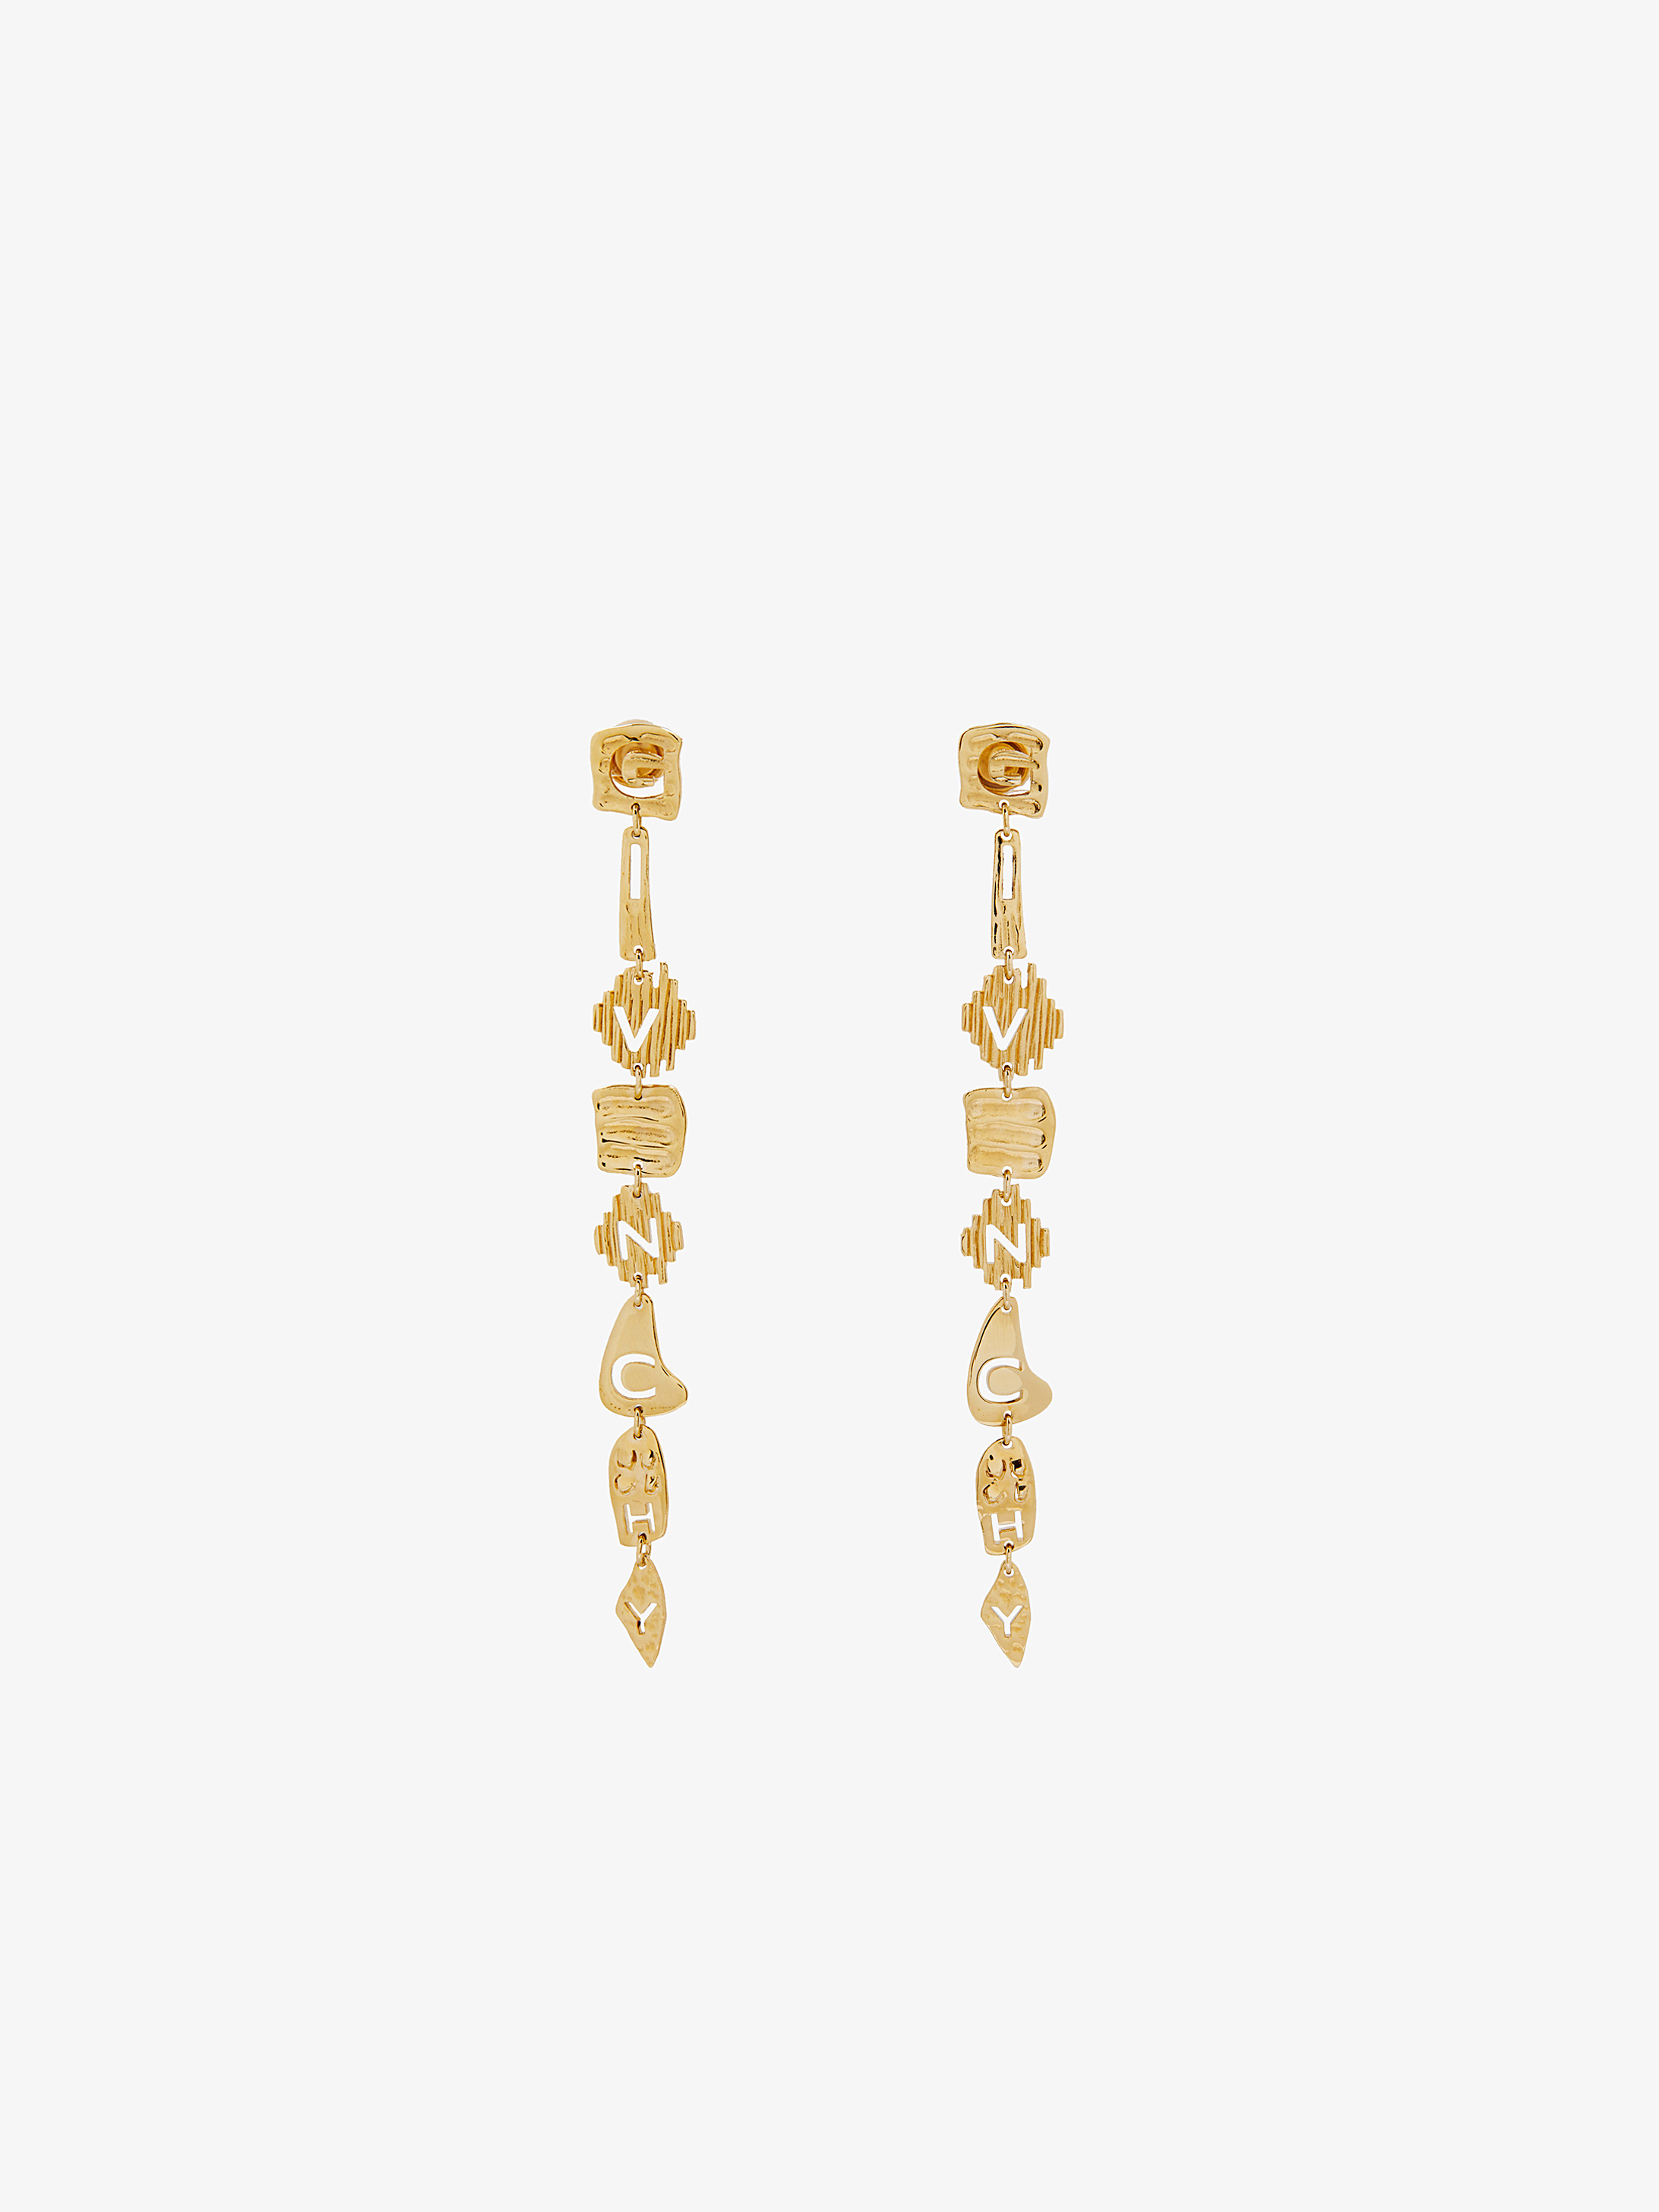 GIVENCHY Charming earrings